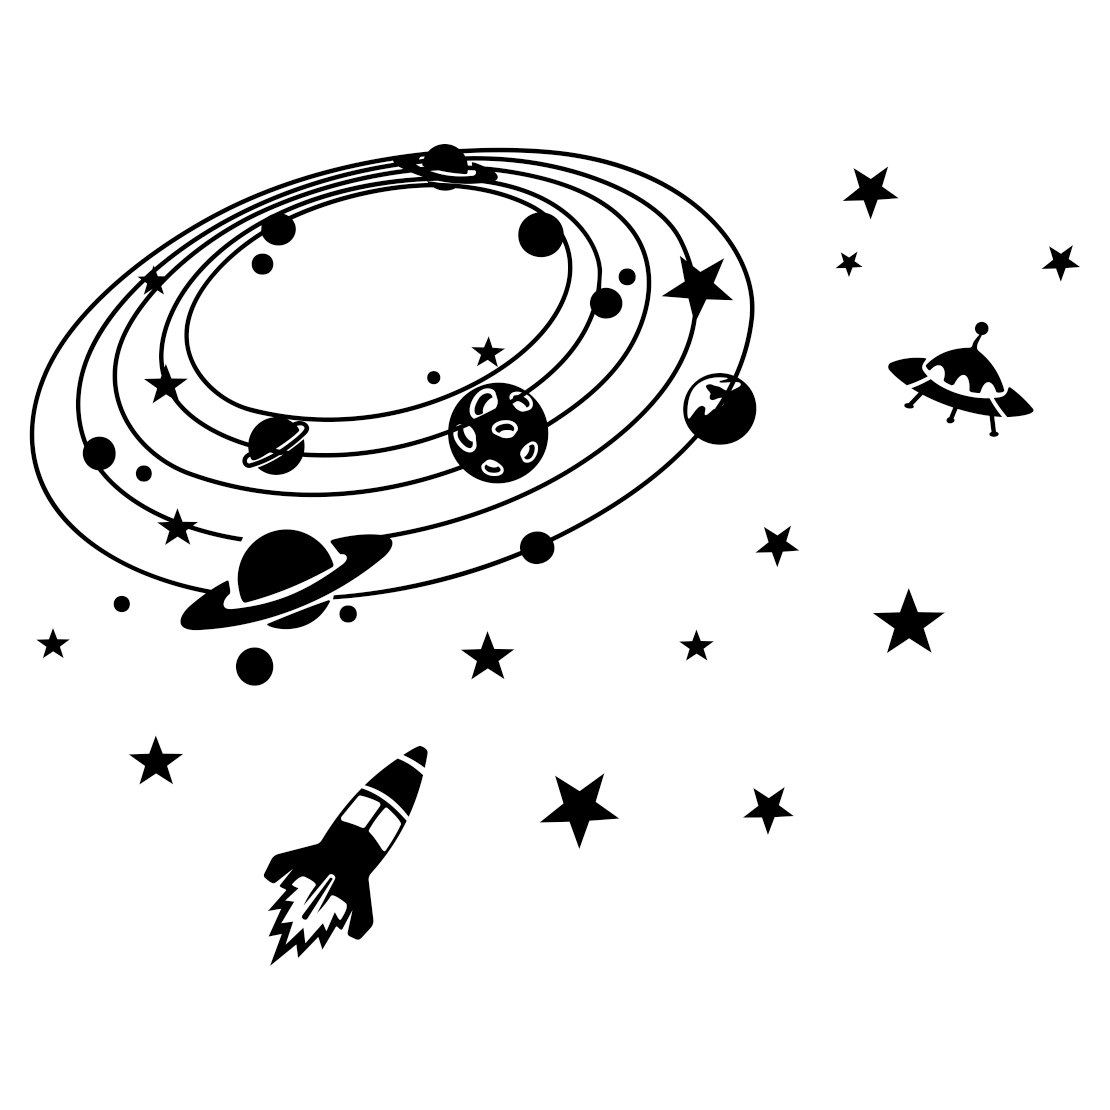 Star Sky Spacecraft Ufo Graphics Design Svg